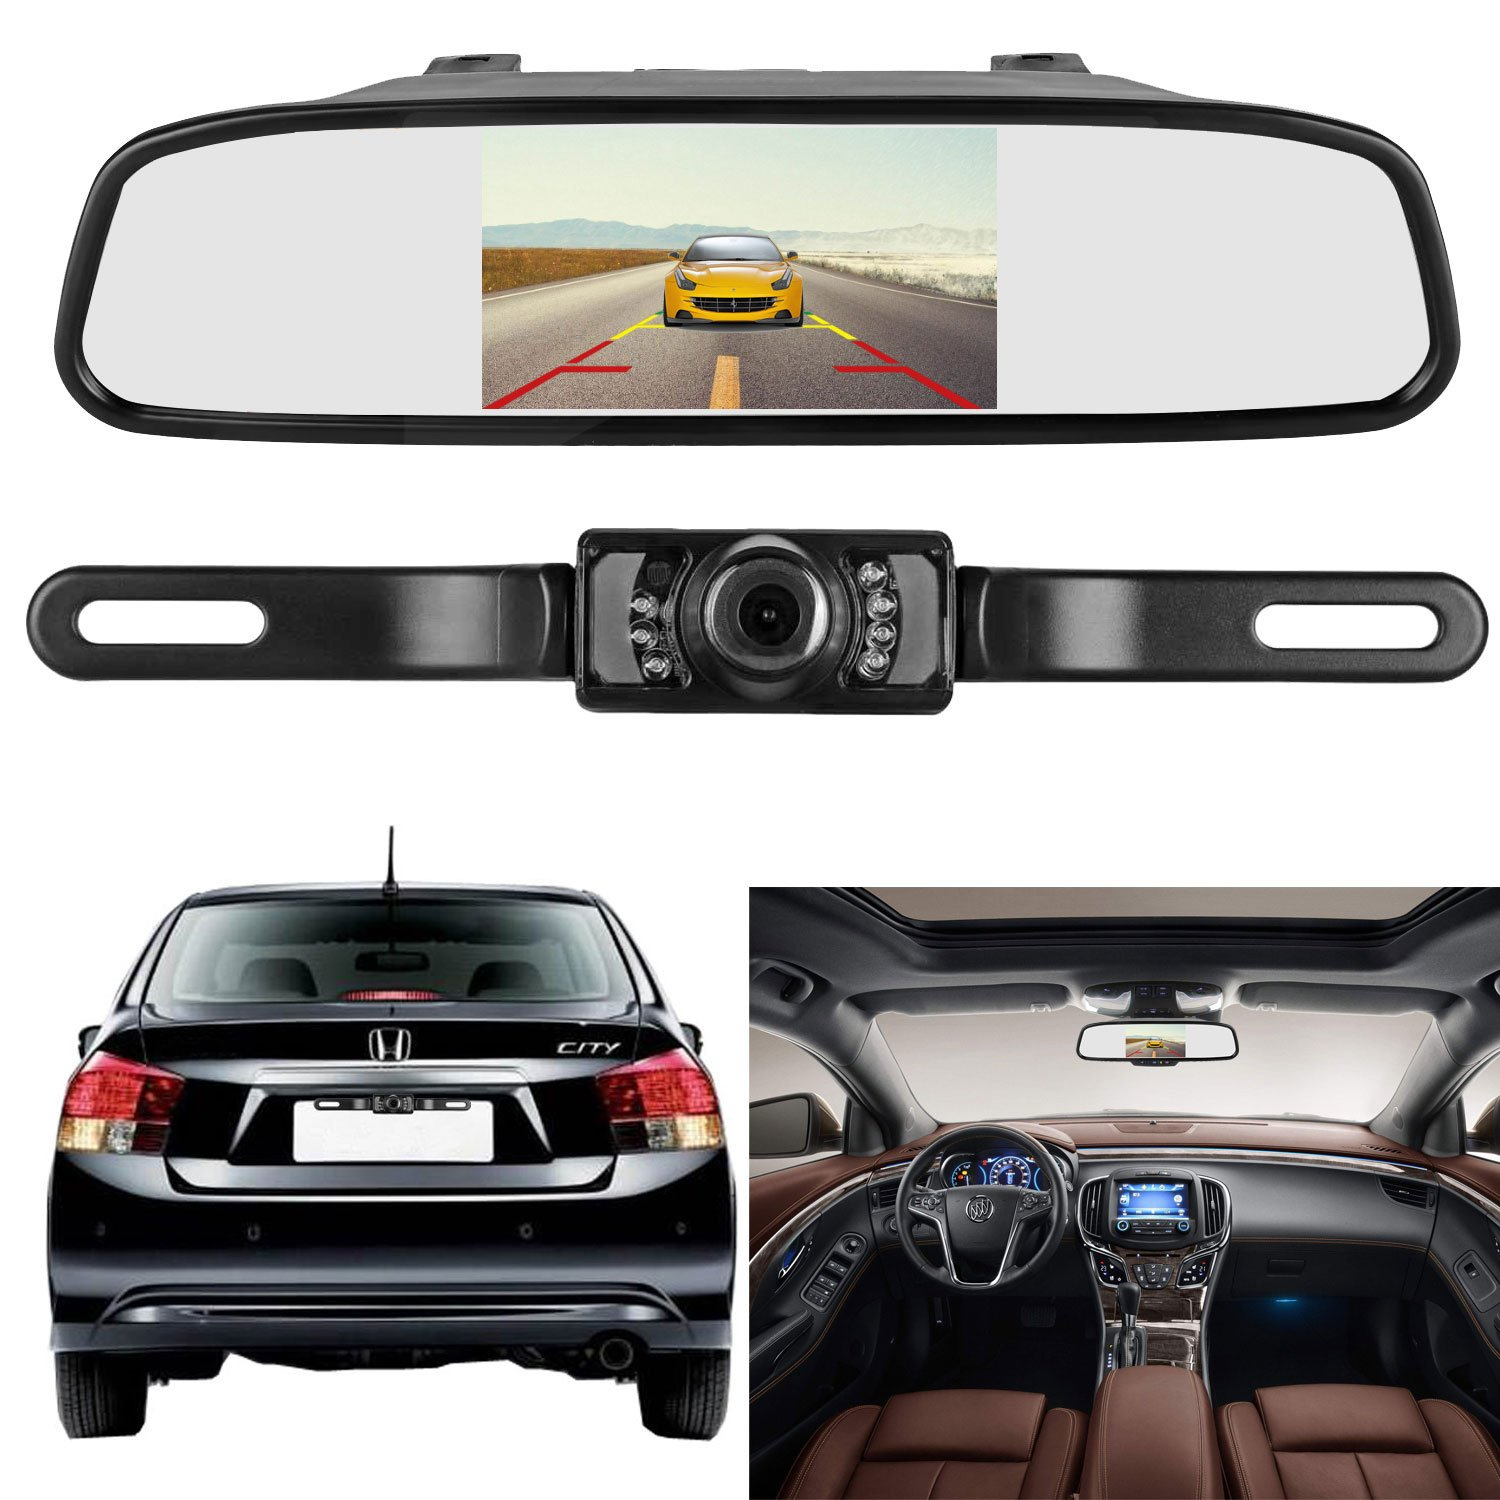 Emmako Backup Camera and Mirror Monitor Kit 4.3 Display Licence Plate Camera System Only Wire Single Power Rear View/Full Time View Optional With 7 LED Night Vision Waterproof For Car